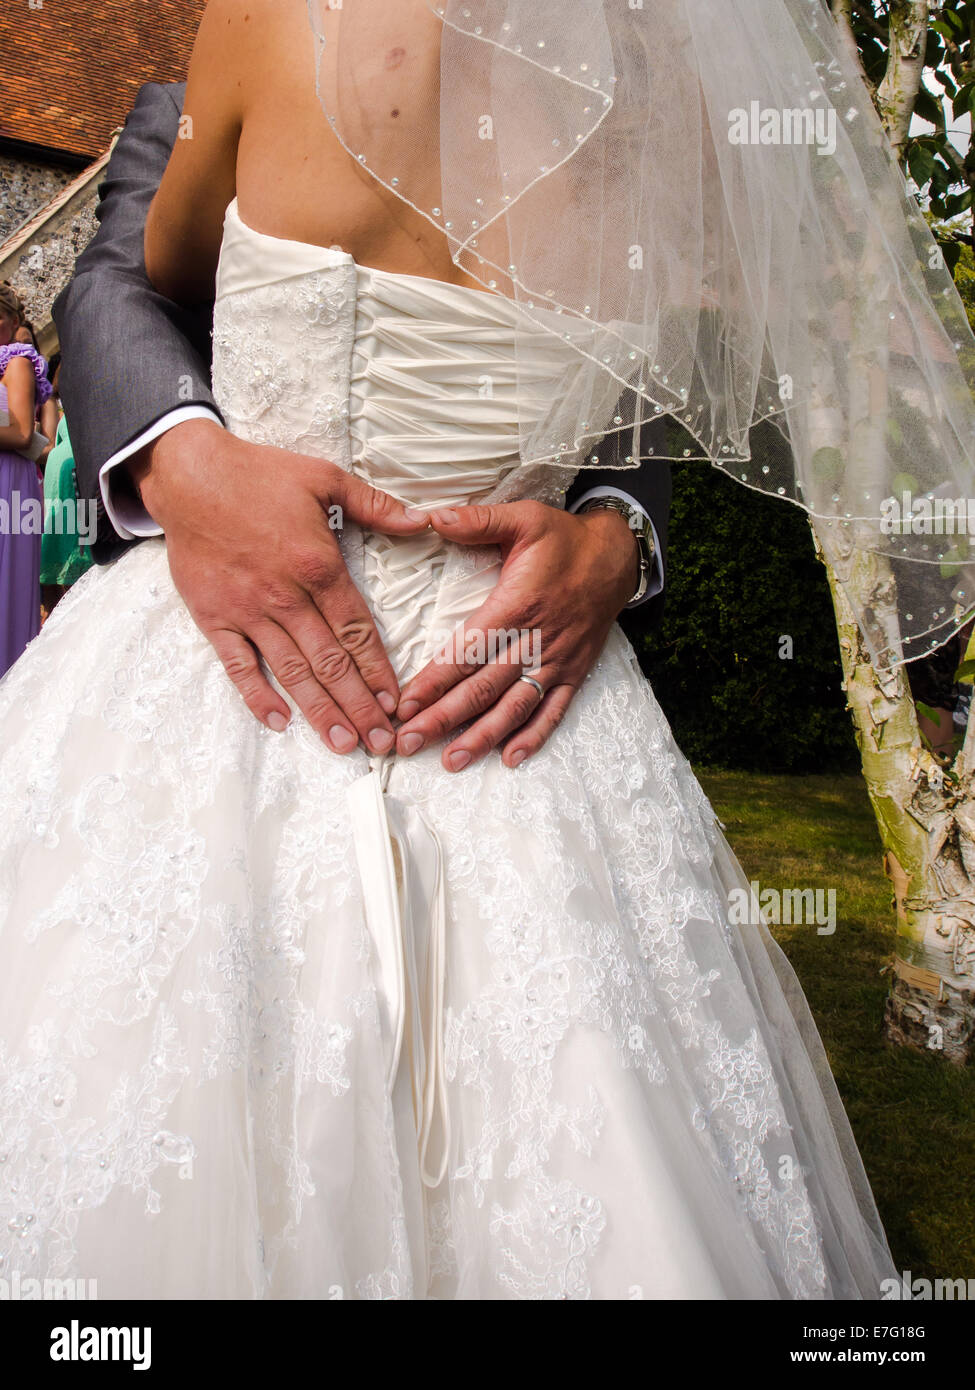 A groom puts his arm around his bride and forms a heart shape with his hands Stock Photo